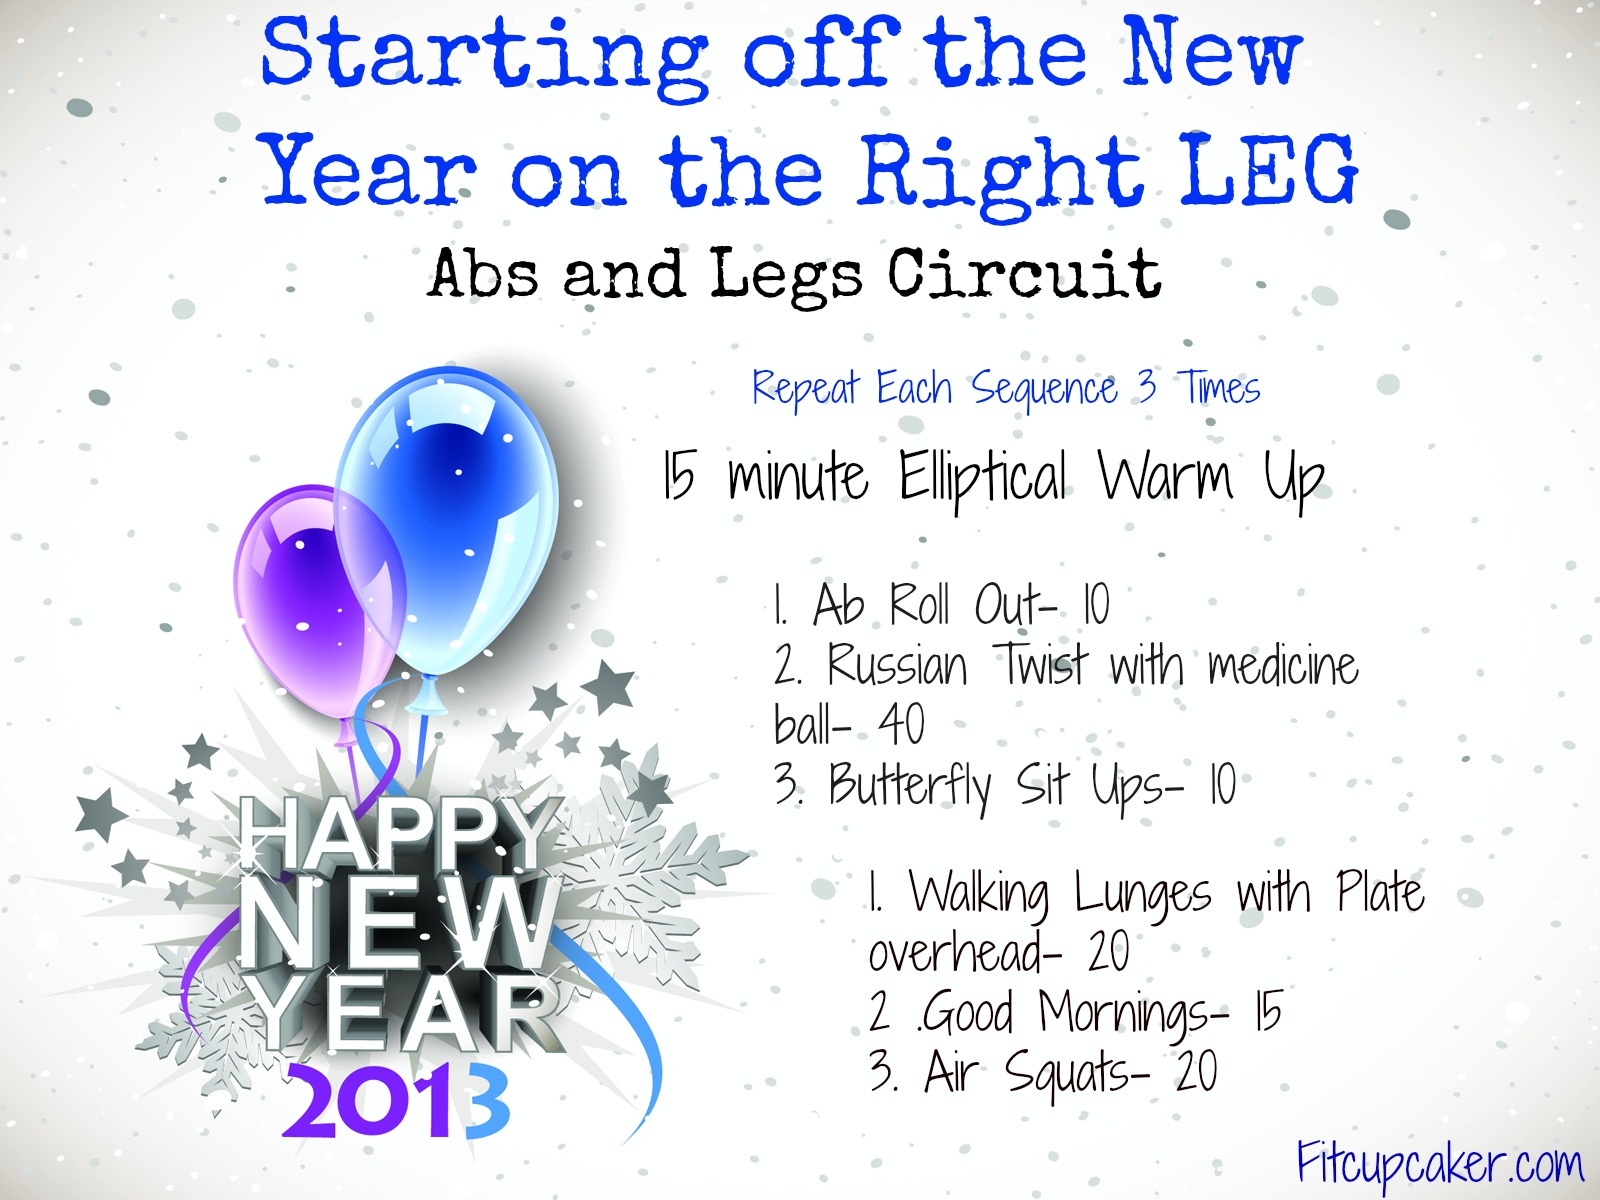 New year leg circuit